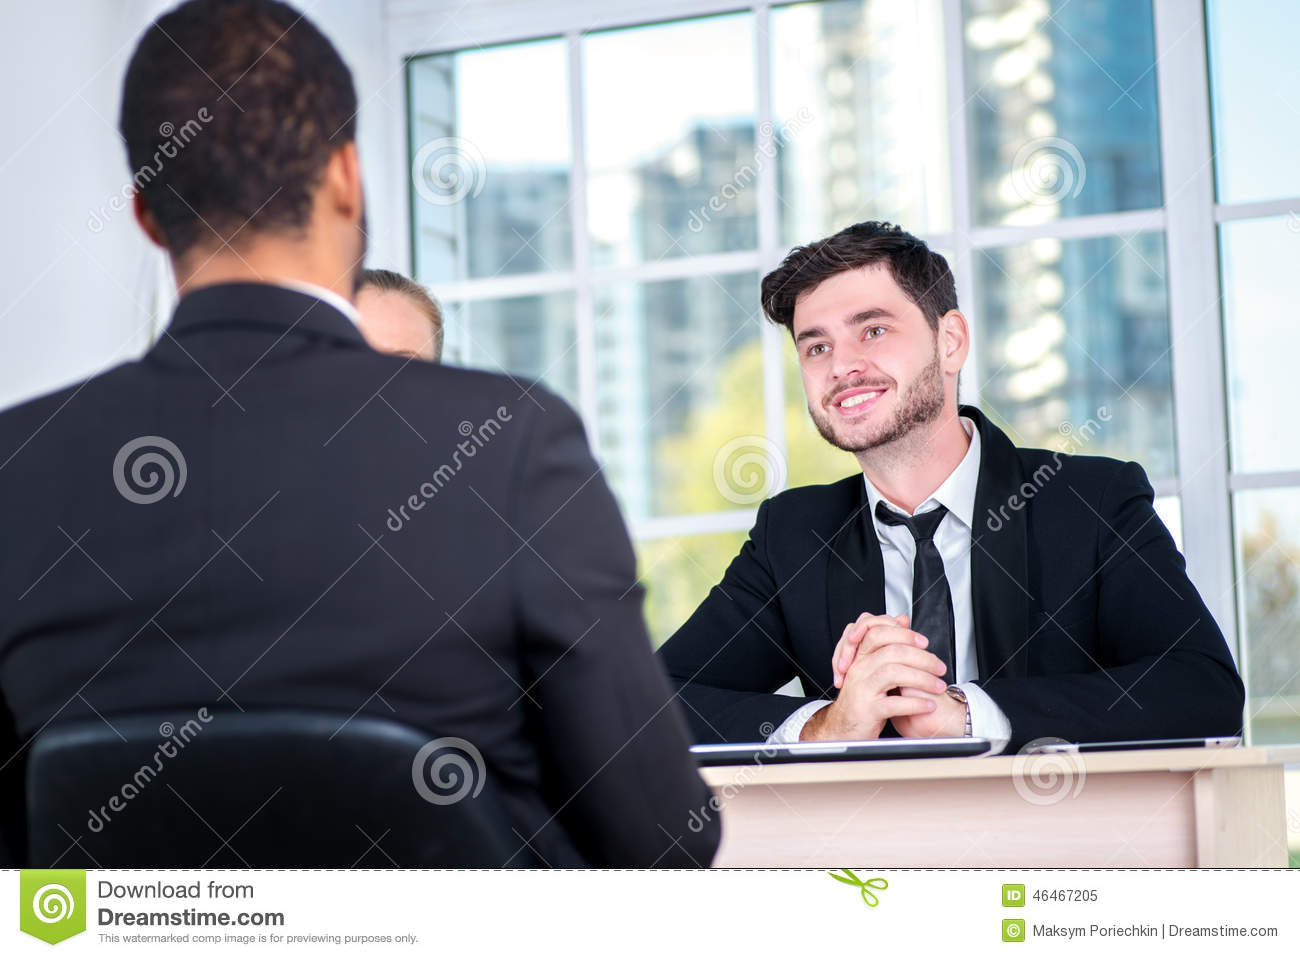 Starting a business meeting. Three successful business people si